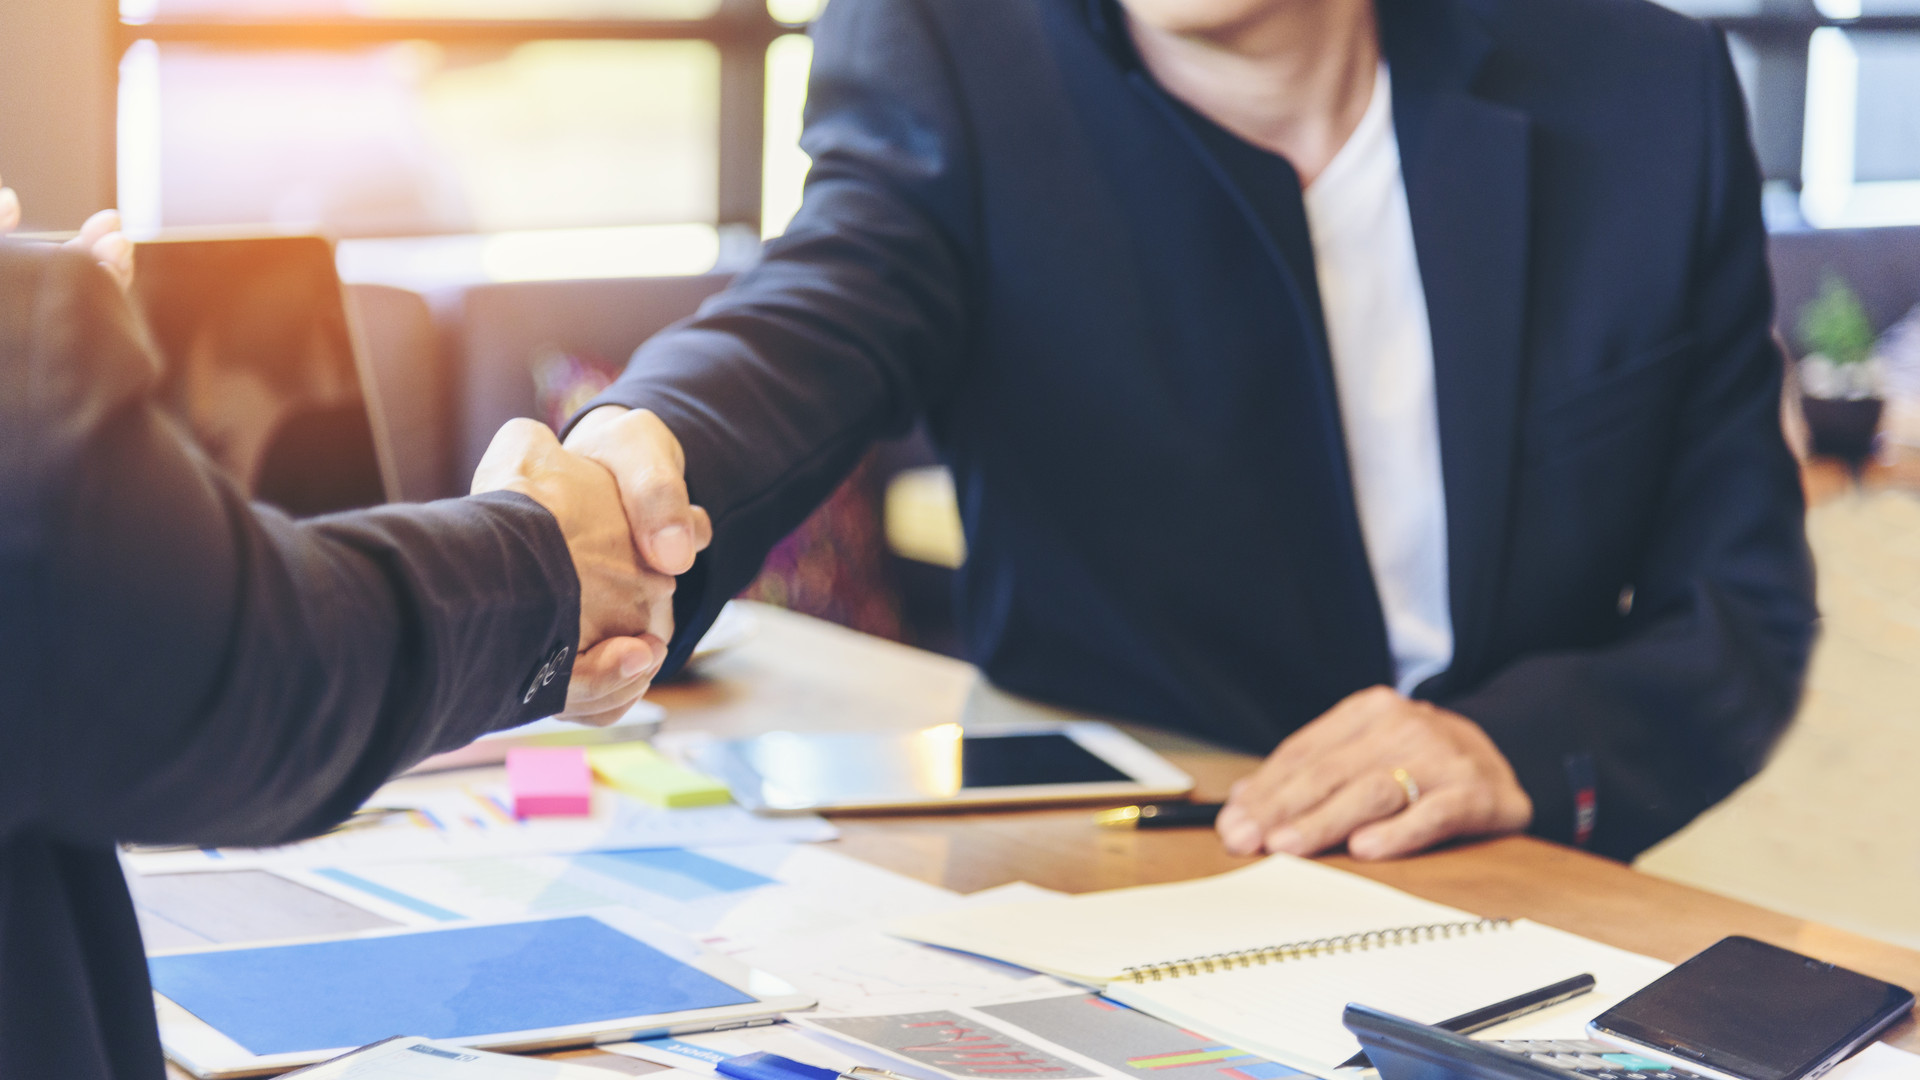 Group of people diversity multiethnic teamwork collaboration team meeting communication concept. Business people hands together diversity multiethic partner Business Meeting brainstorming Businessman team